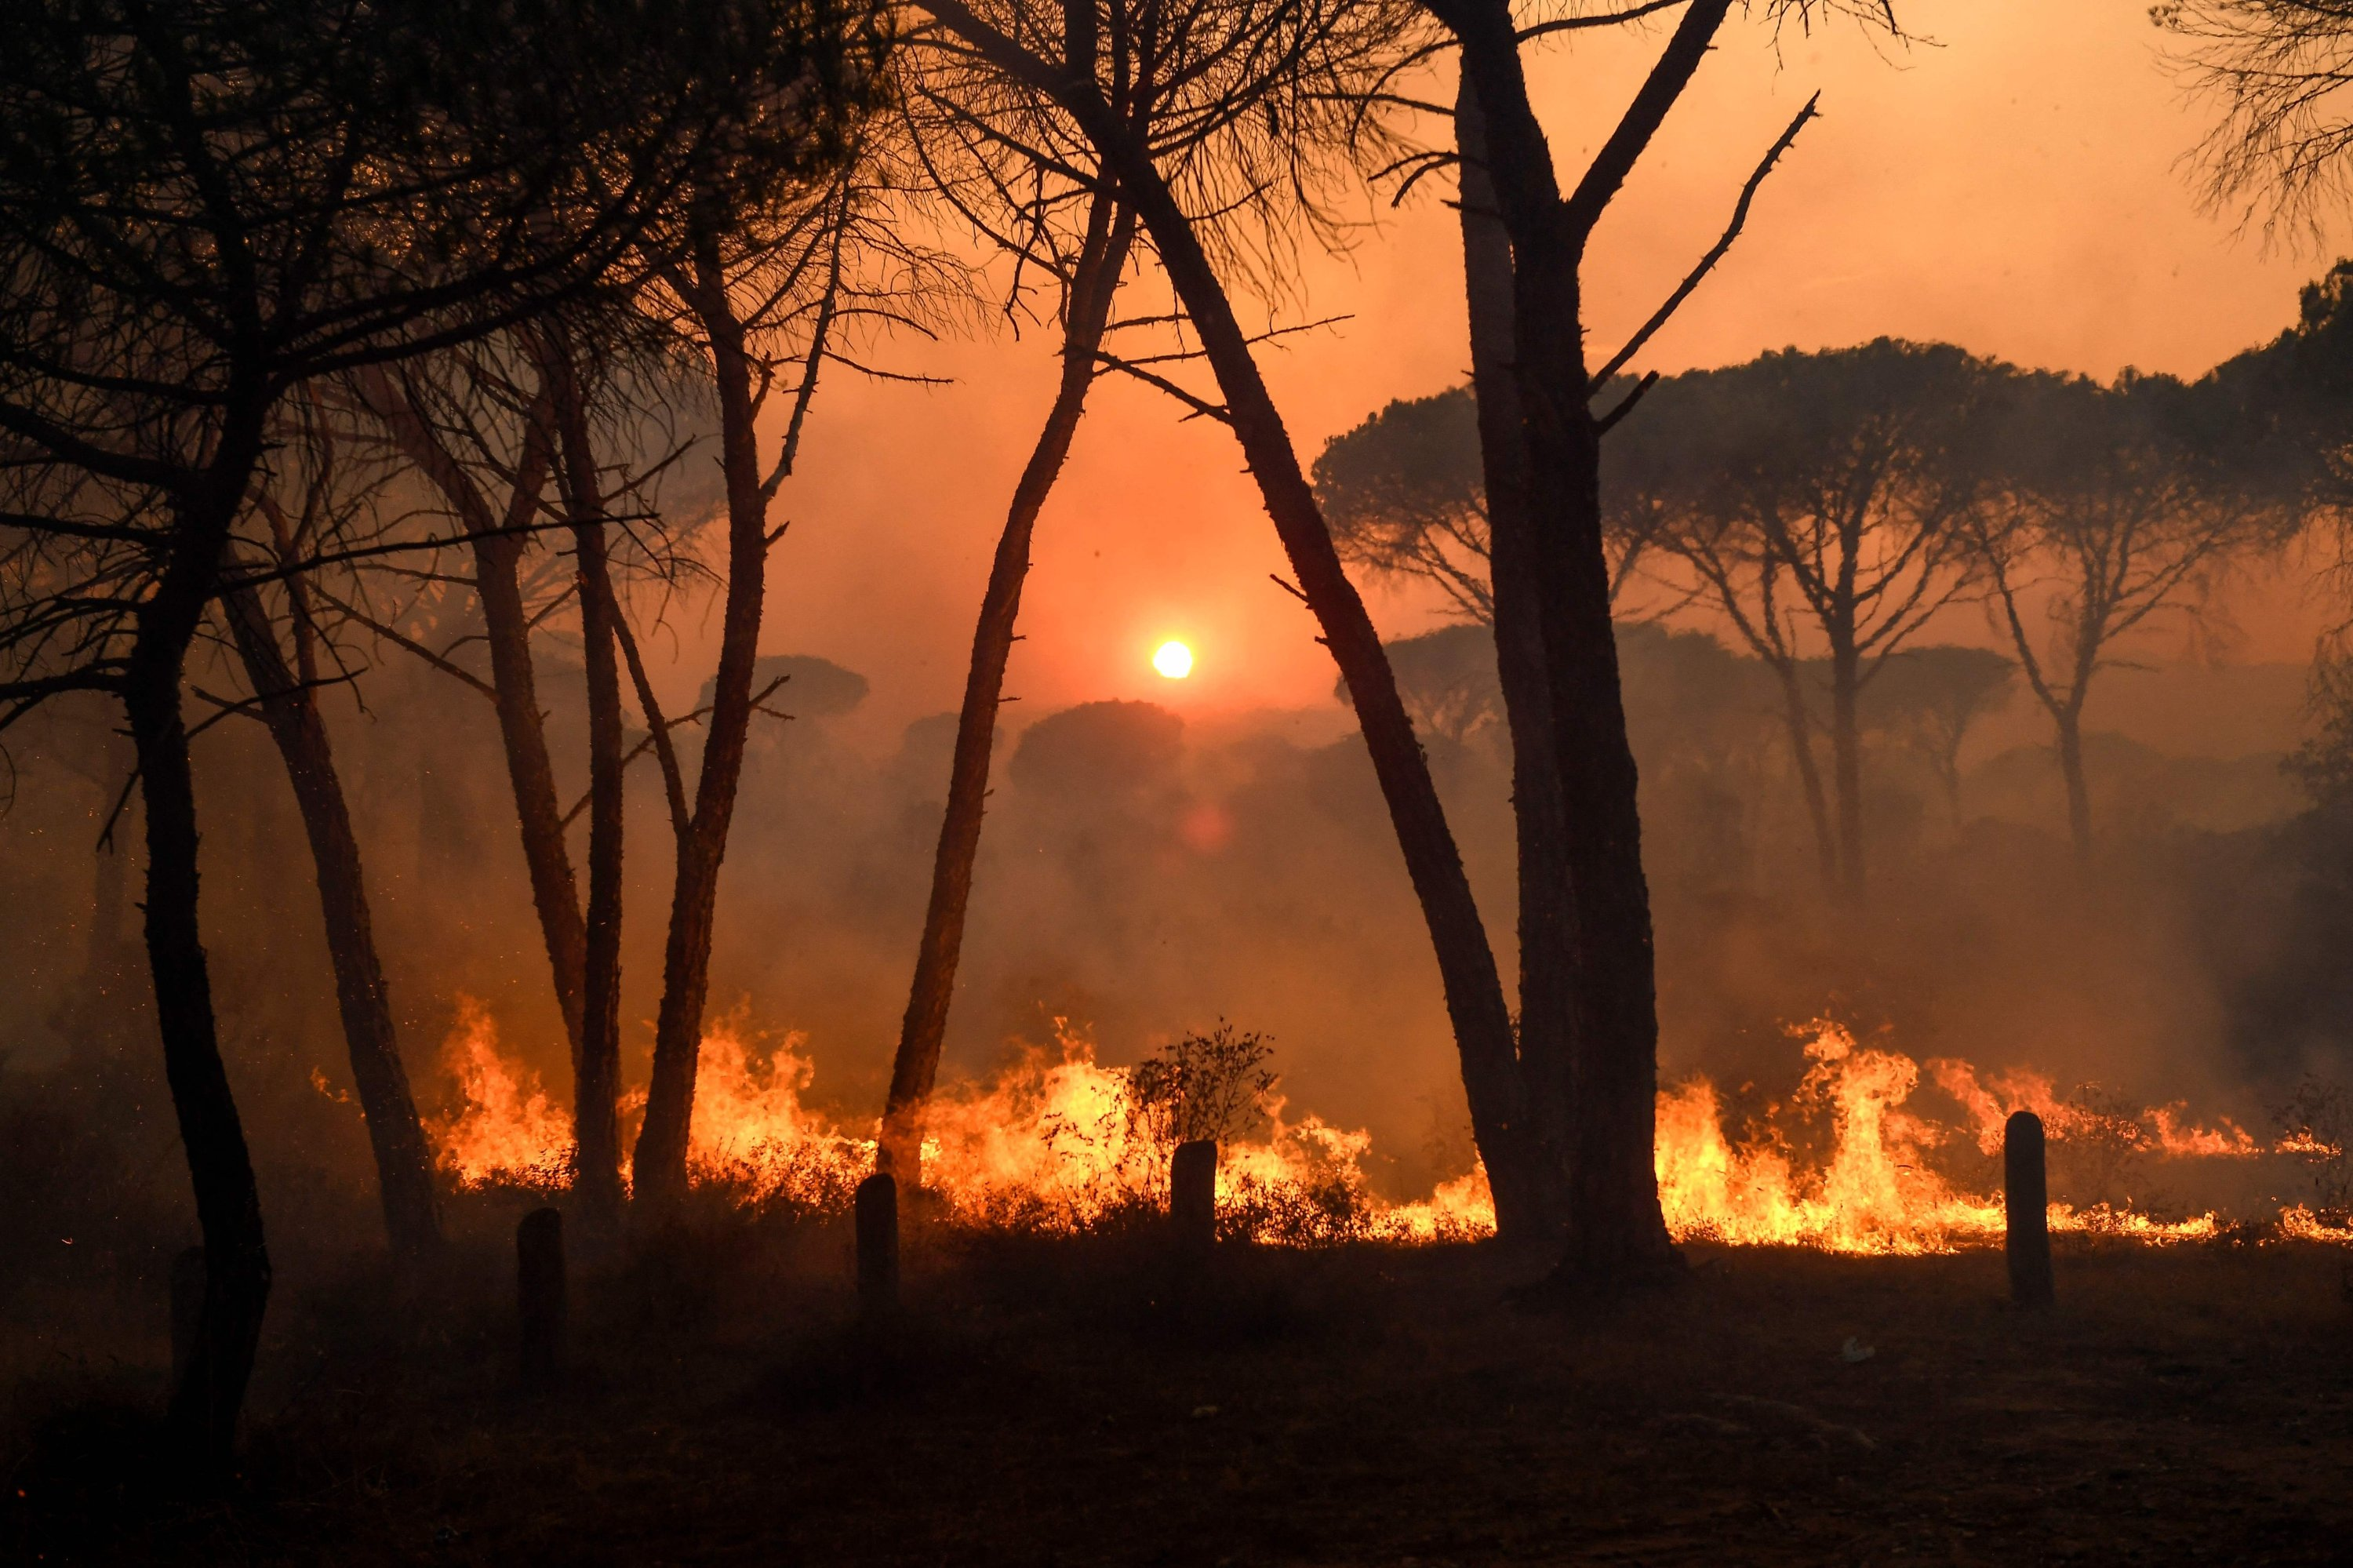 Flames rise as light from the setting sun is filtered through smoke during a forest wildfire, near Gonfaron, in the department of Var, southern France, on Aug. 17, 2021. (AFP Photo)